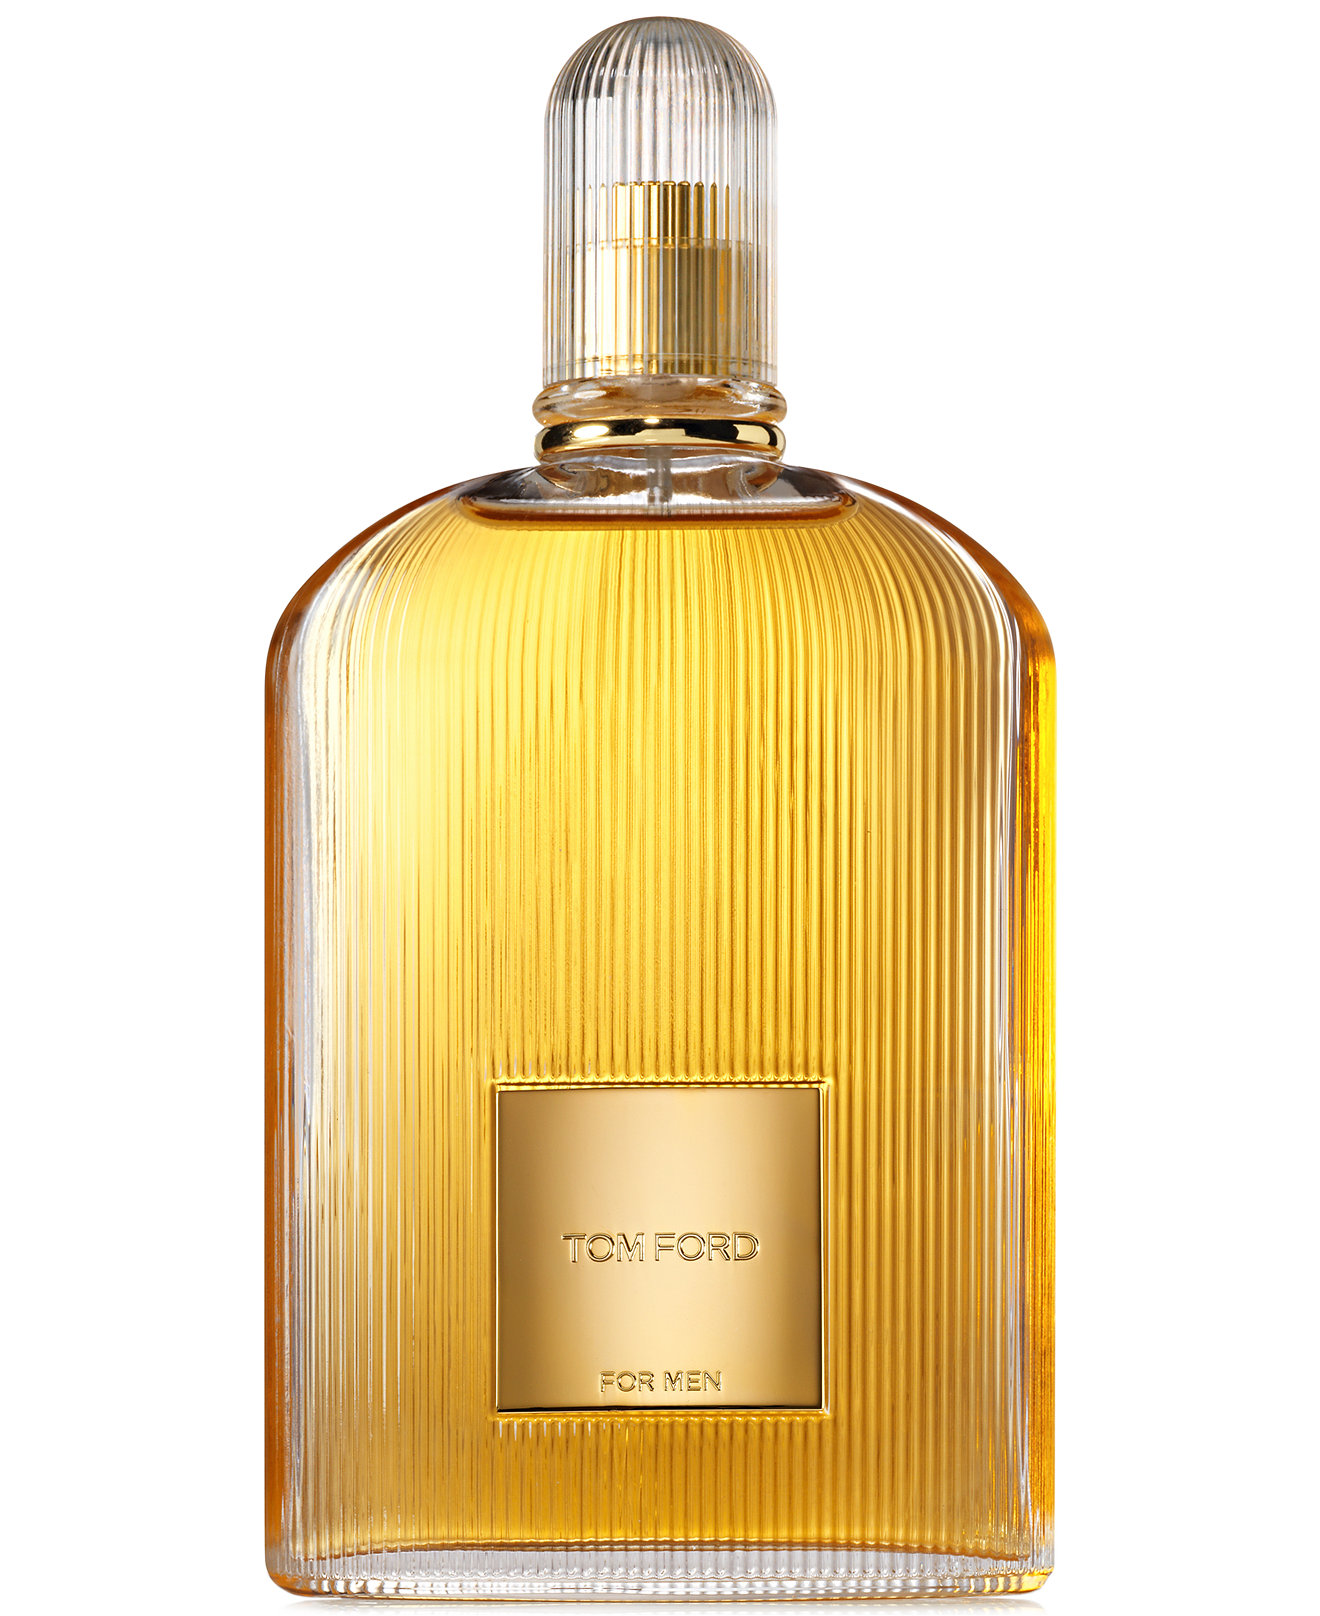 Tom Ford For Men Fragrance Collection  Shop All Brands  Beauty  Macy's